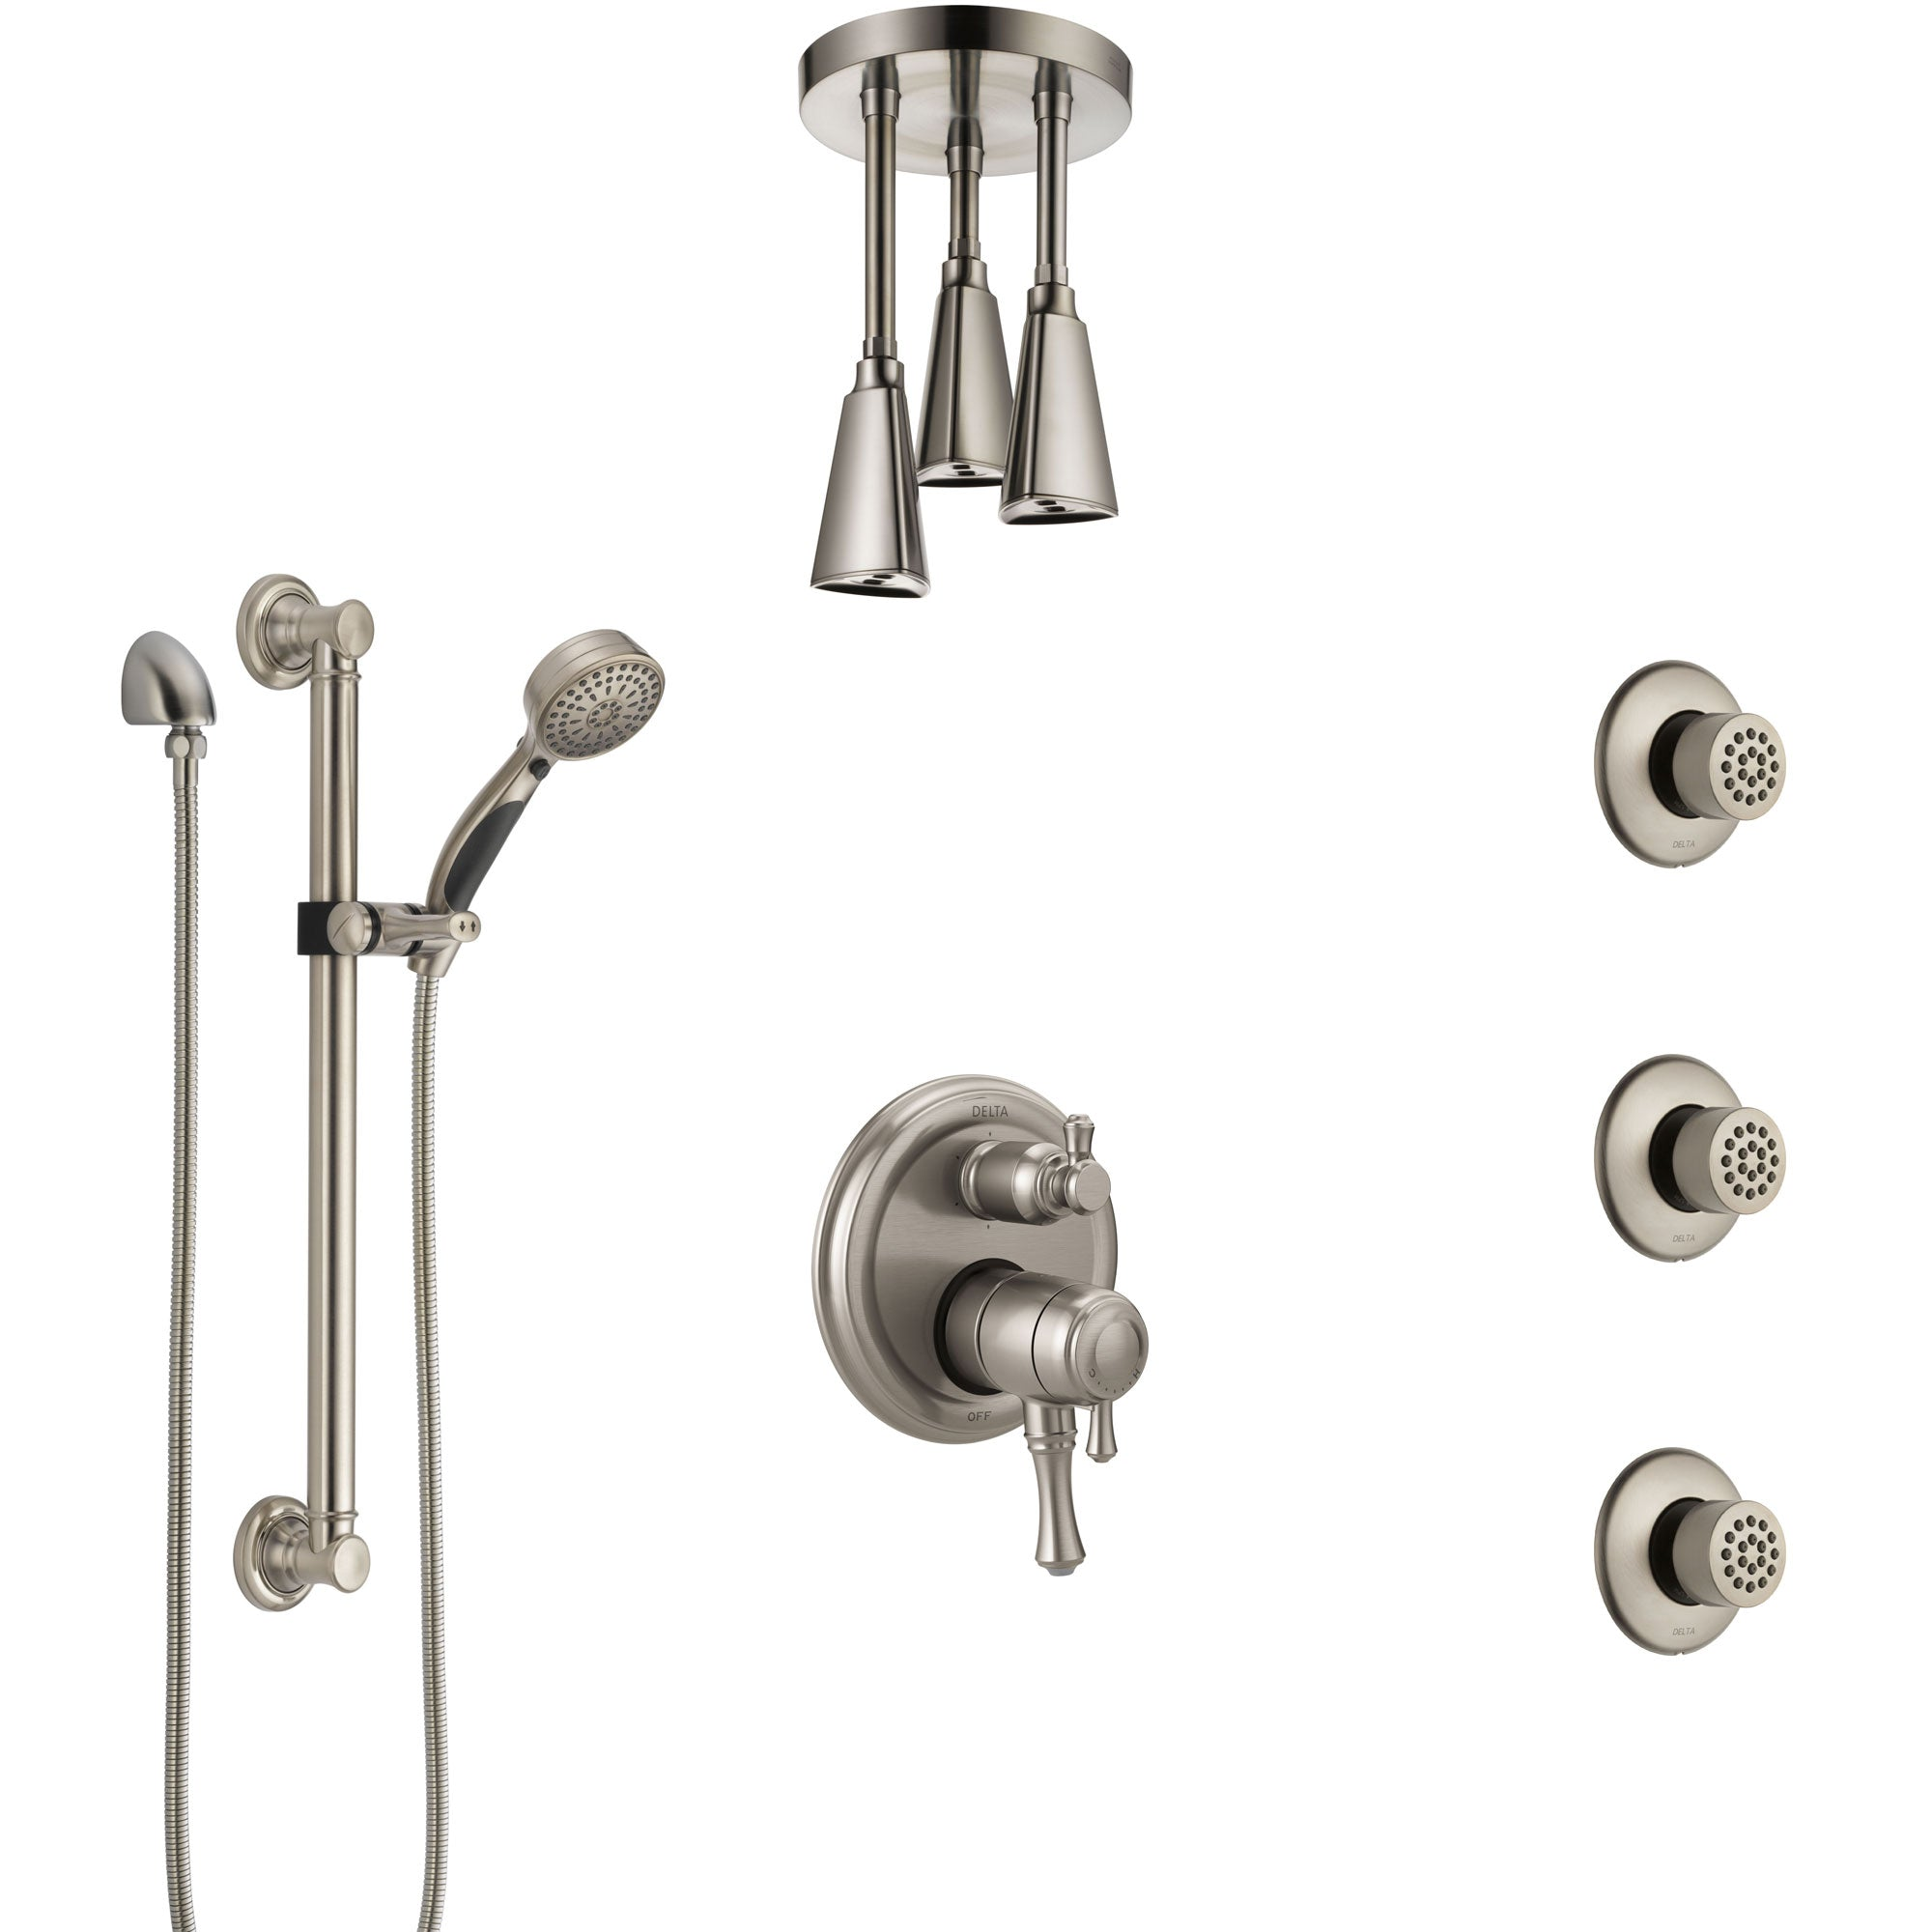 Delta Cassidy Dual Control Handle Stainless Steel Finish Shower System, Ceiling Showerhead, 3 Body Jets, Grab Bar Hand Spray SS27997SS4